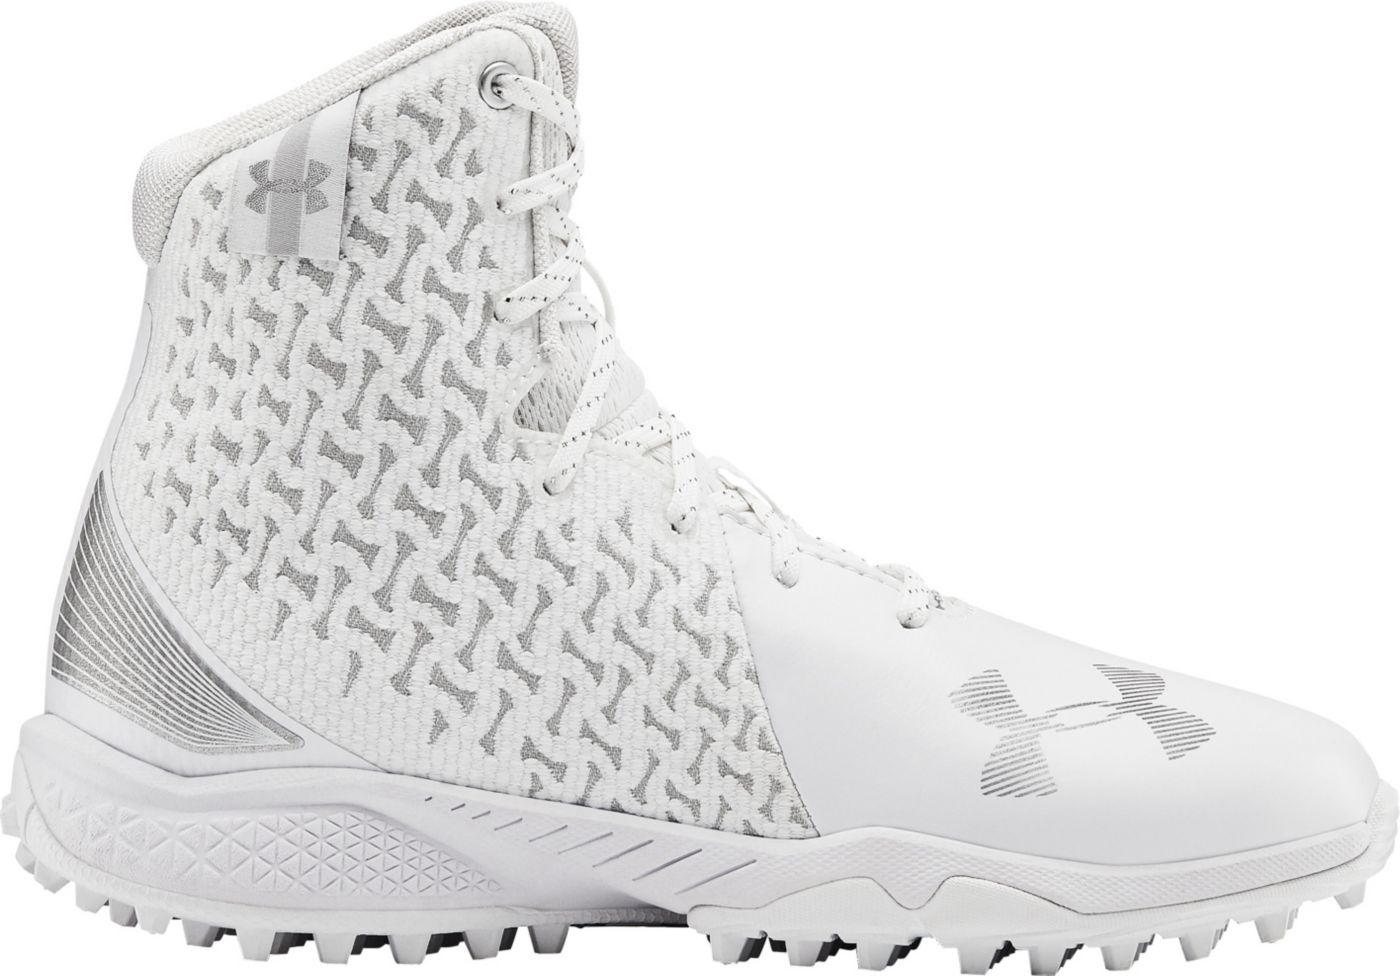 Under Armour Women's Highlight Turf Lacrosse Cleats